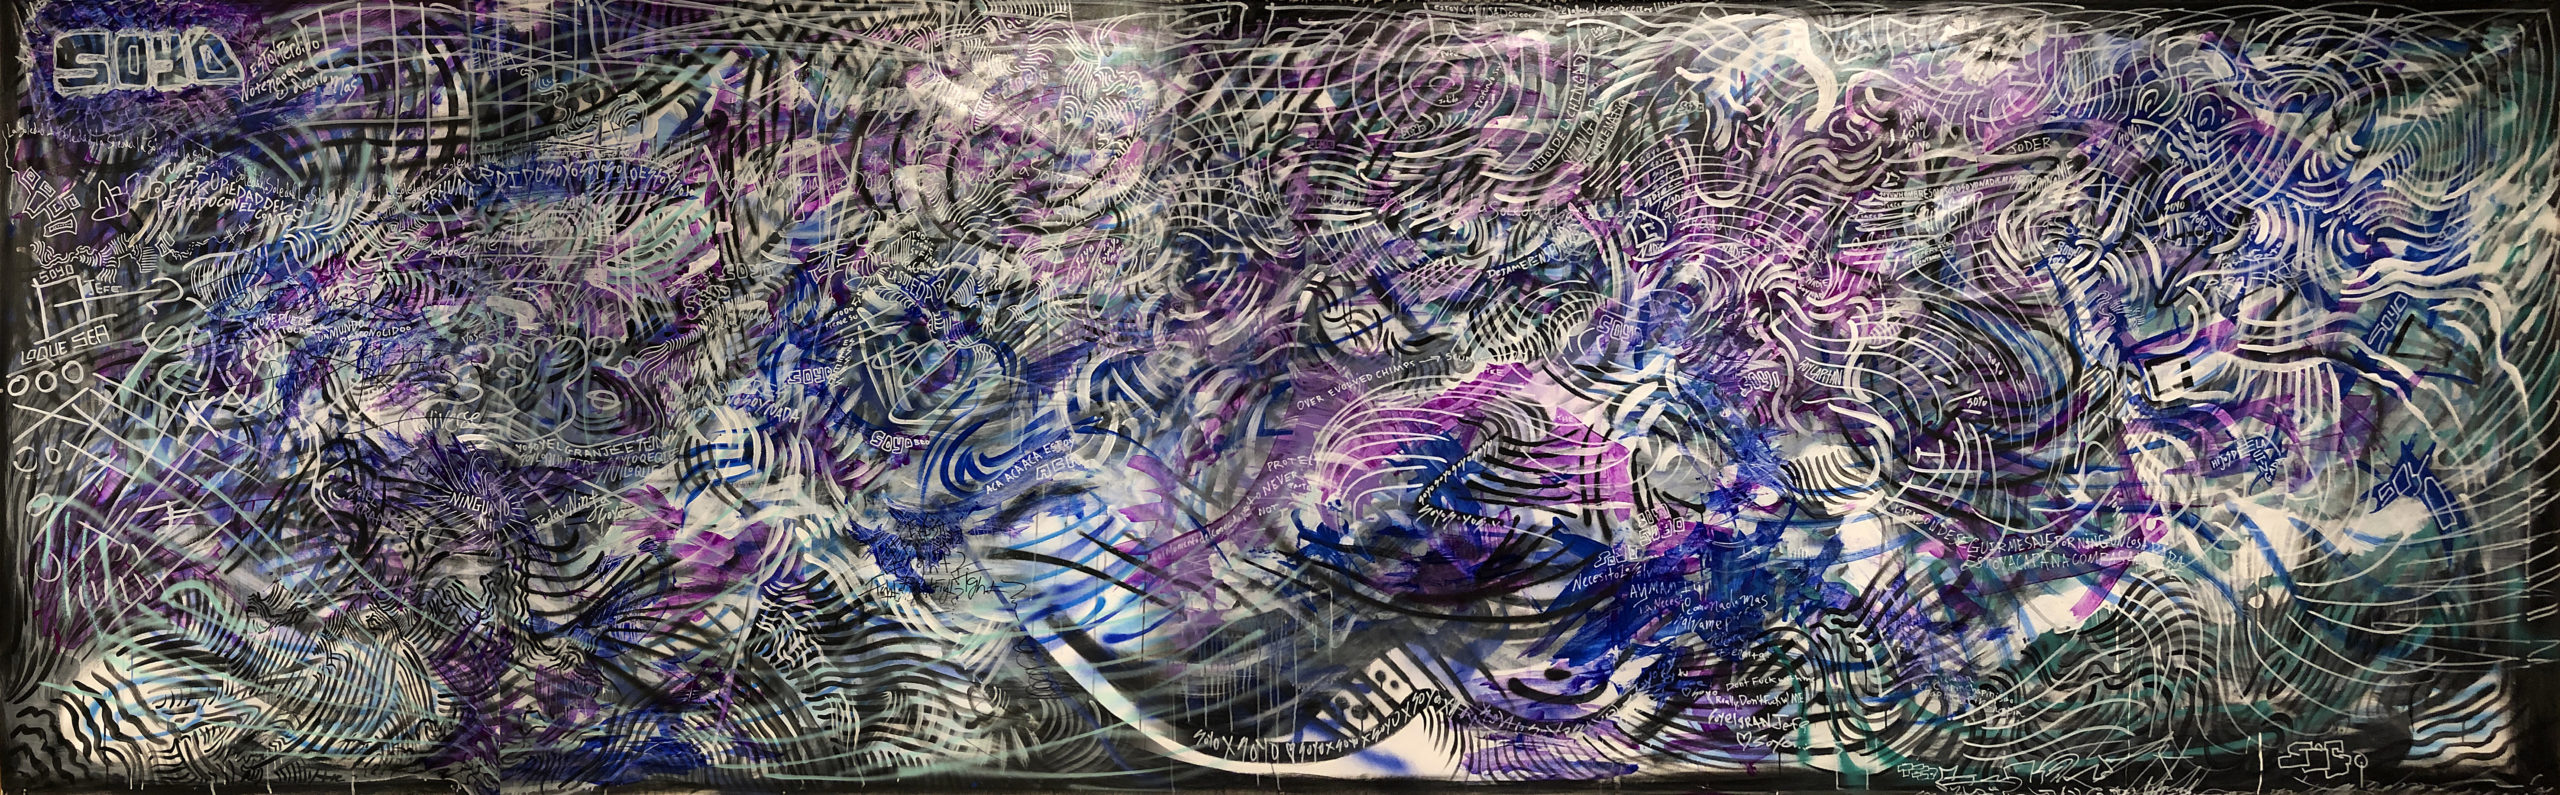 "Soyo Lo Que Sea - mixed media 212"" x 63"" - 2019 - $15,000"